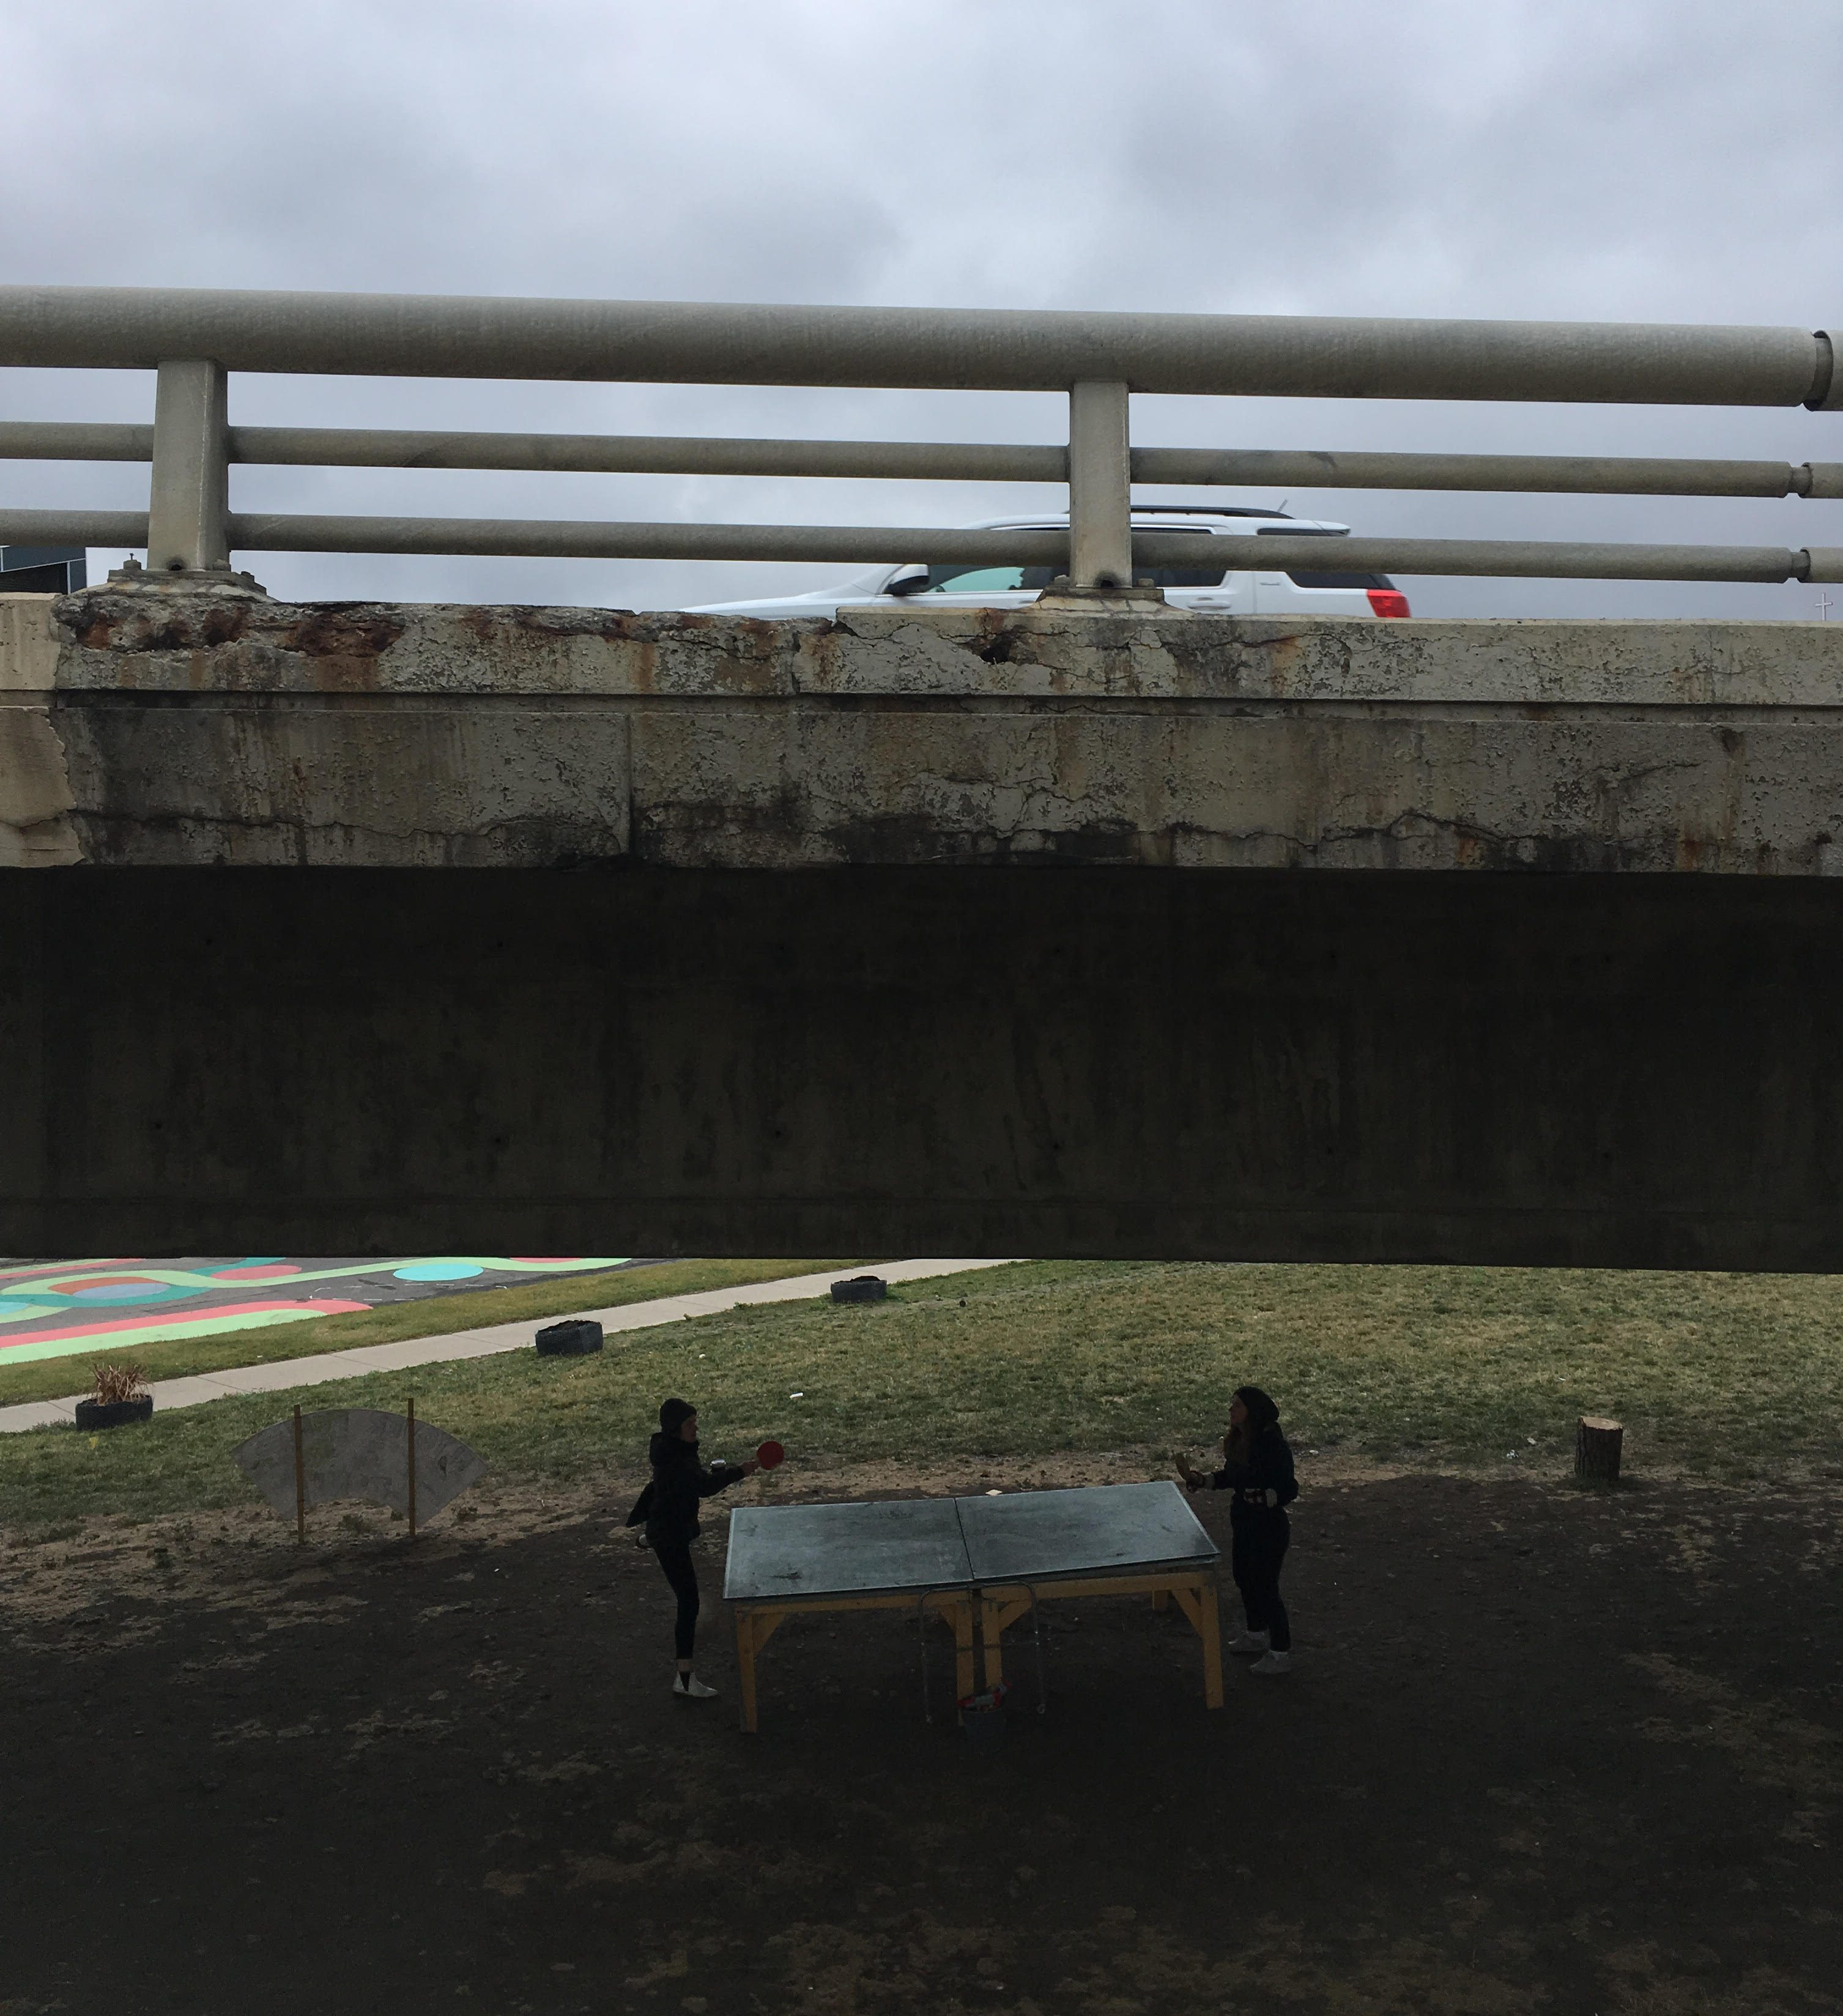 Two people playing ping pong under an elevated highway